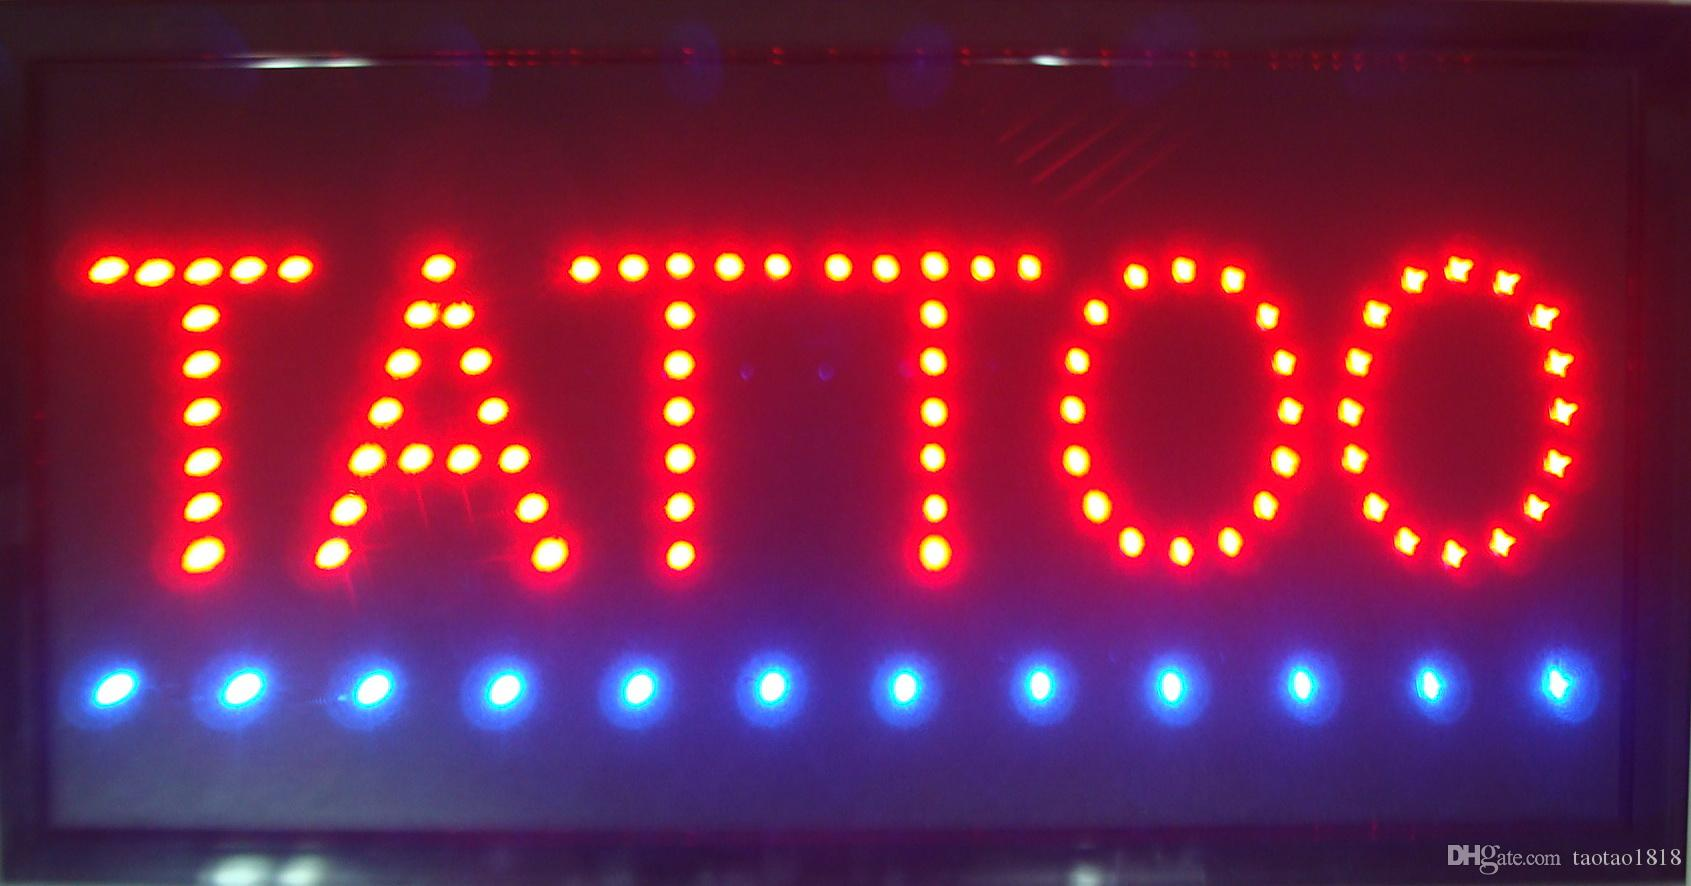 Hot sale custom neon signs led TATTOO sign for the TATTOO shop open Plastic  PVC frame Display size 19cm*10cm